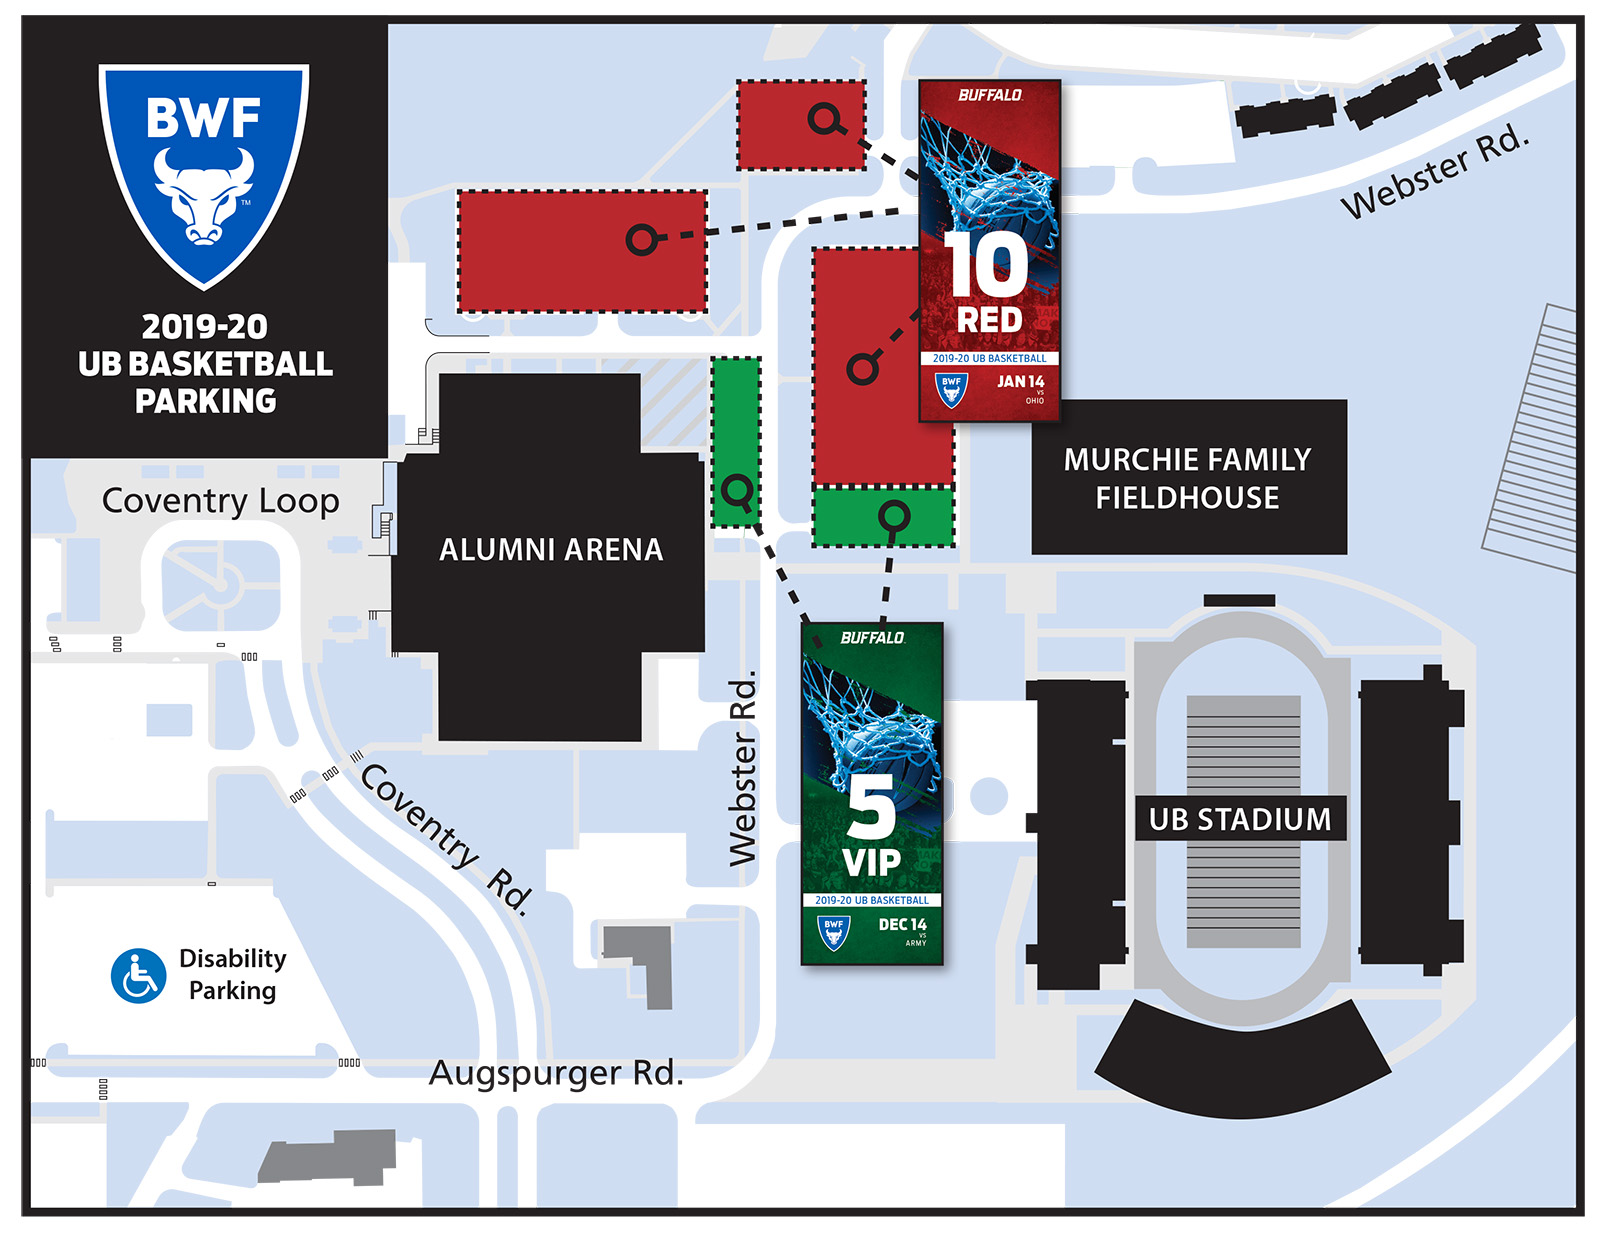 2019-20 Basketball Parking Map